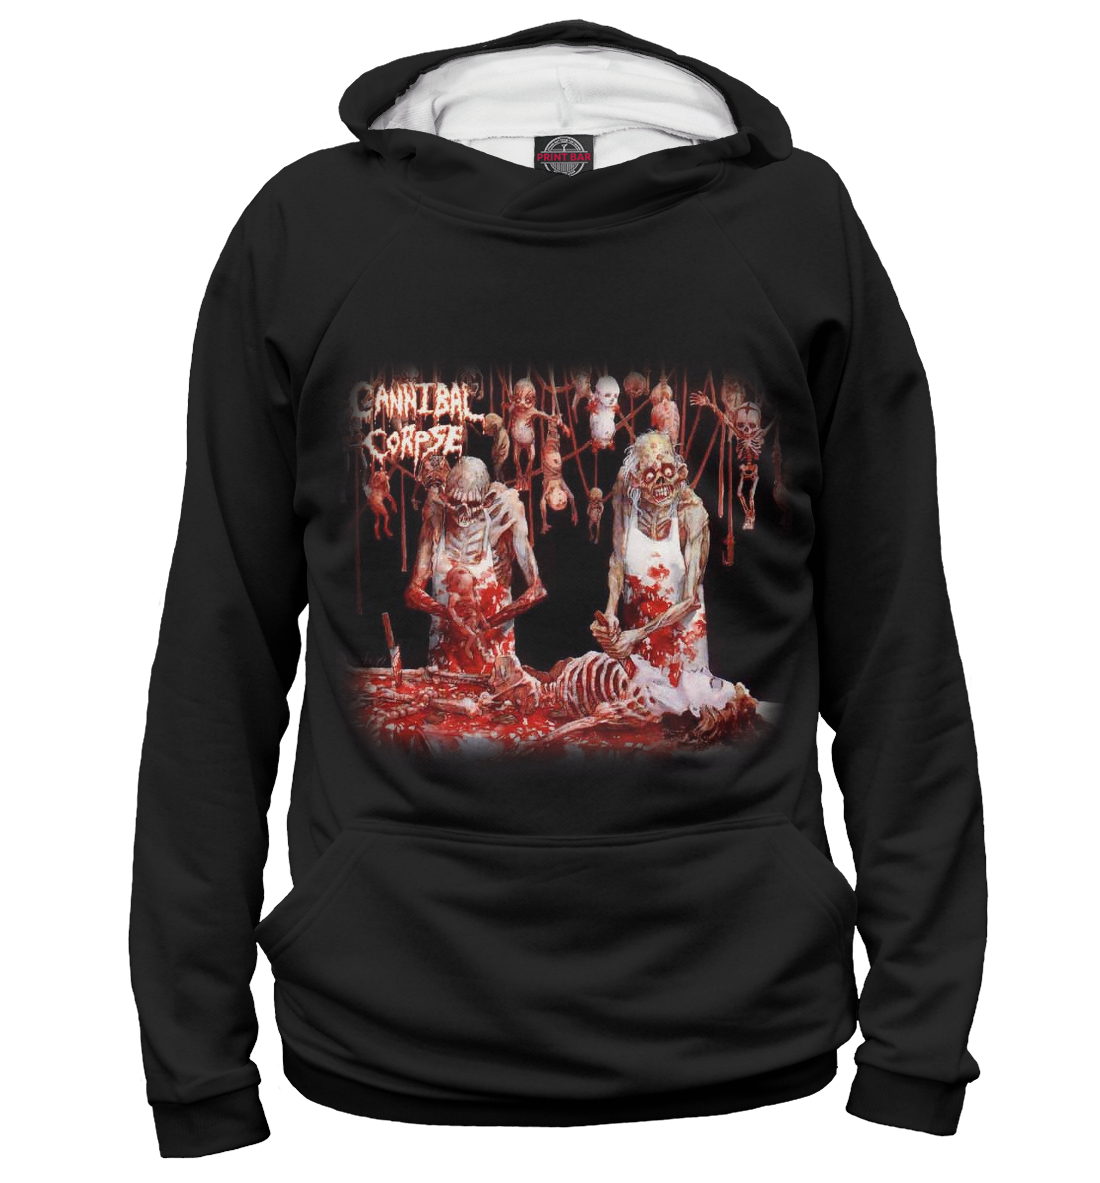 Купить Cannibal Corpse, Printbar, Худи, MZK-894449-hud-2